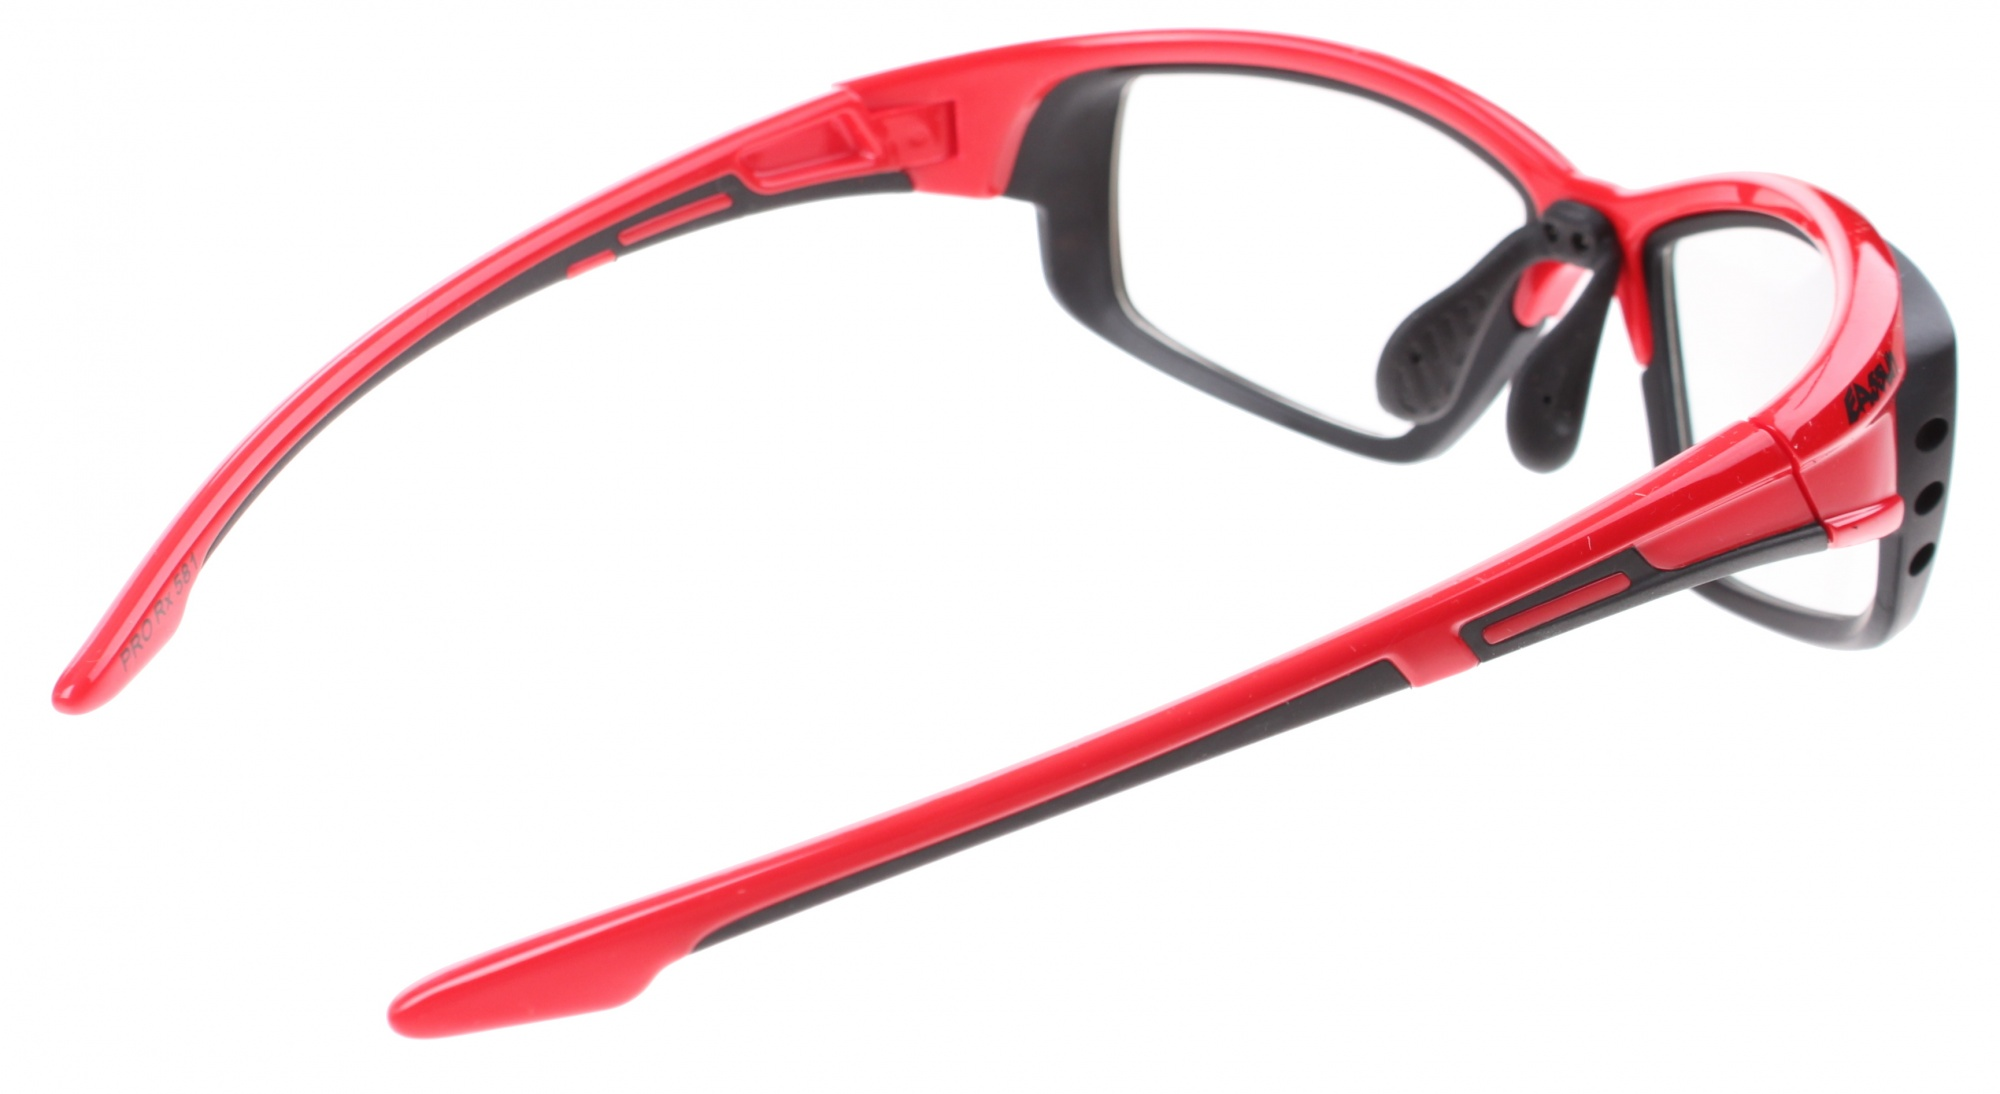 01c1a90443 Eassun bicycle glasses Pro RX Montura red   black clear glass ...